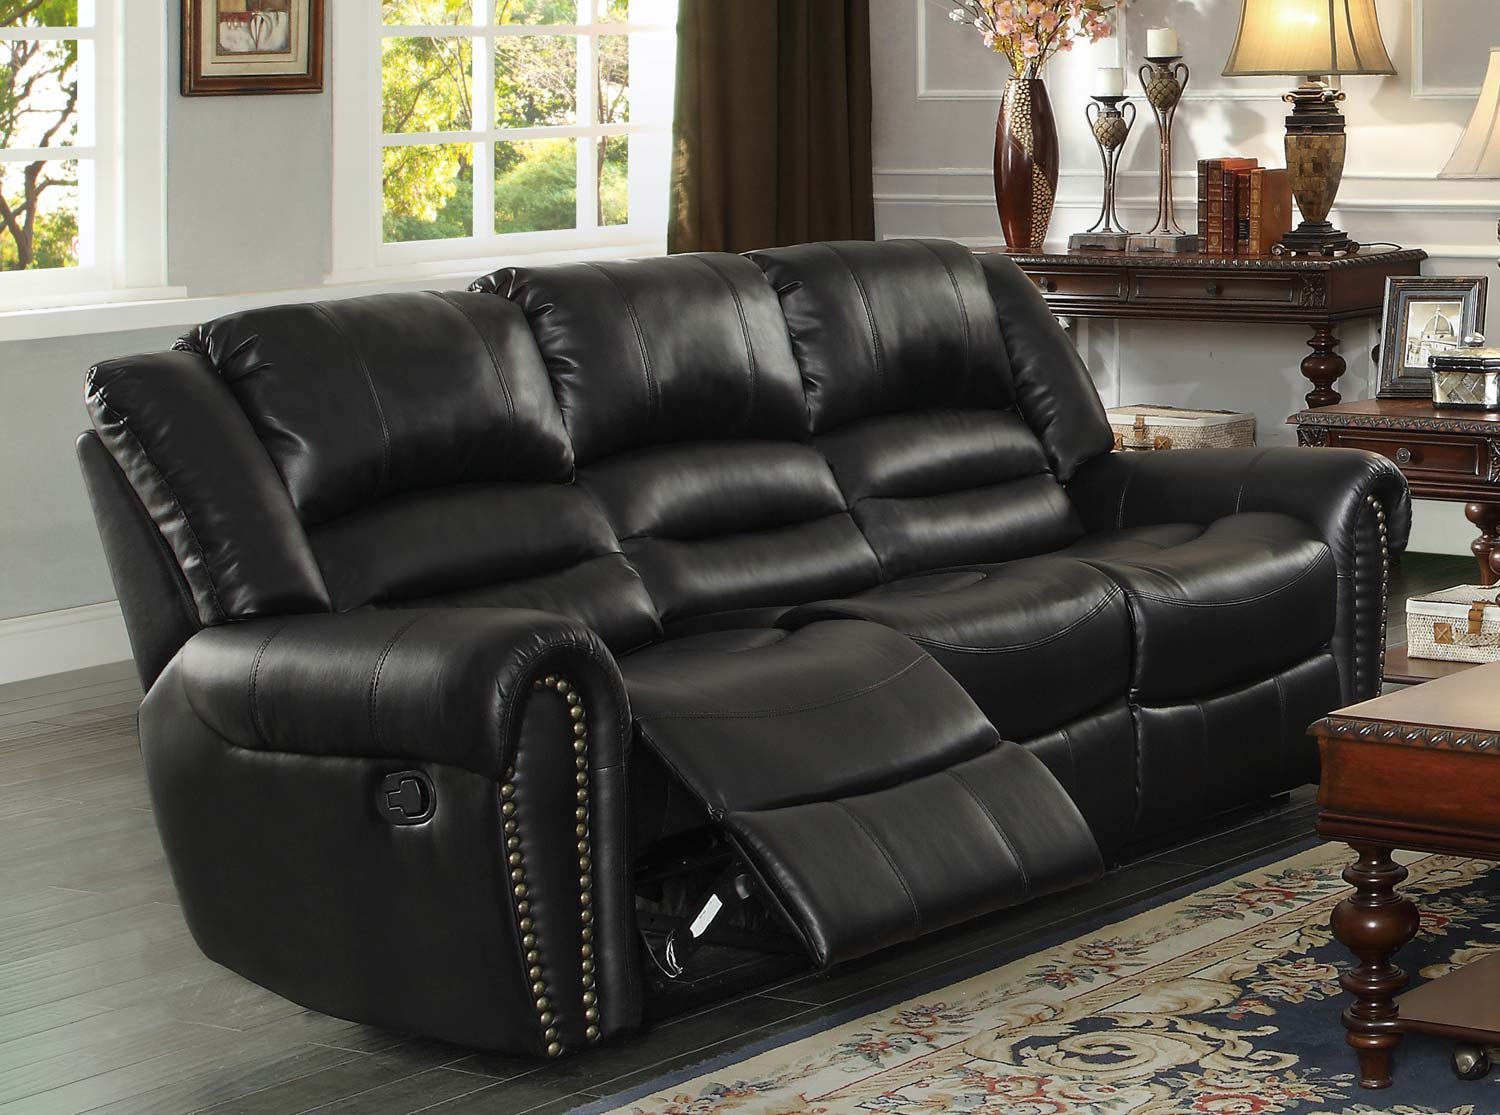 Center Hill Double Reclining Nailhead Sofa In Black Bonded